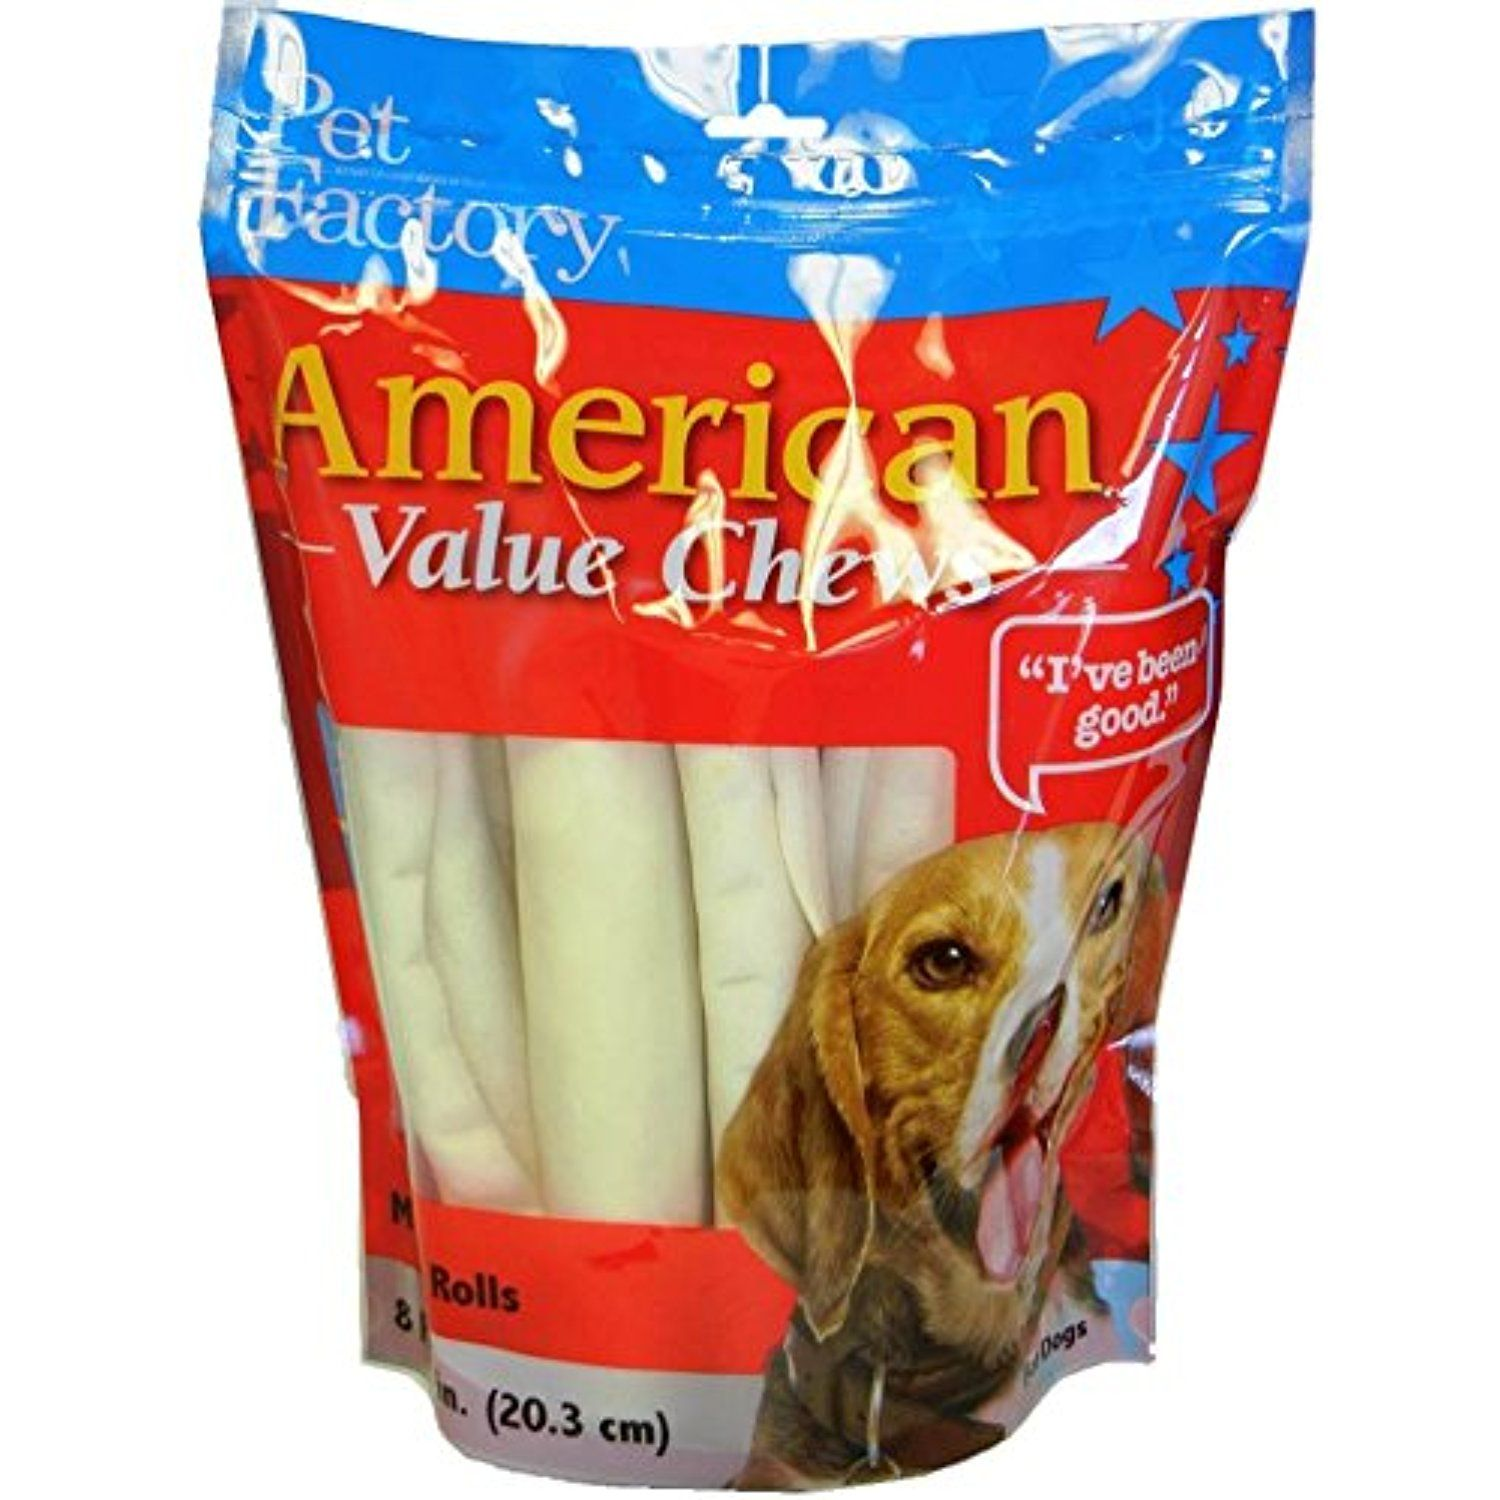 Pet Factory American Beef Hide Rolls Chews For Dogs 8 Pack